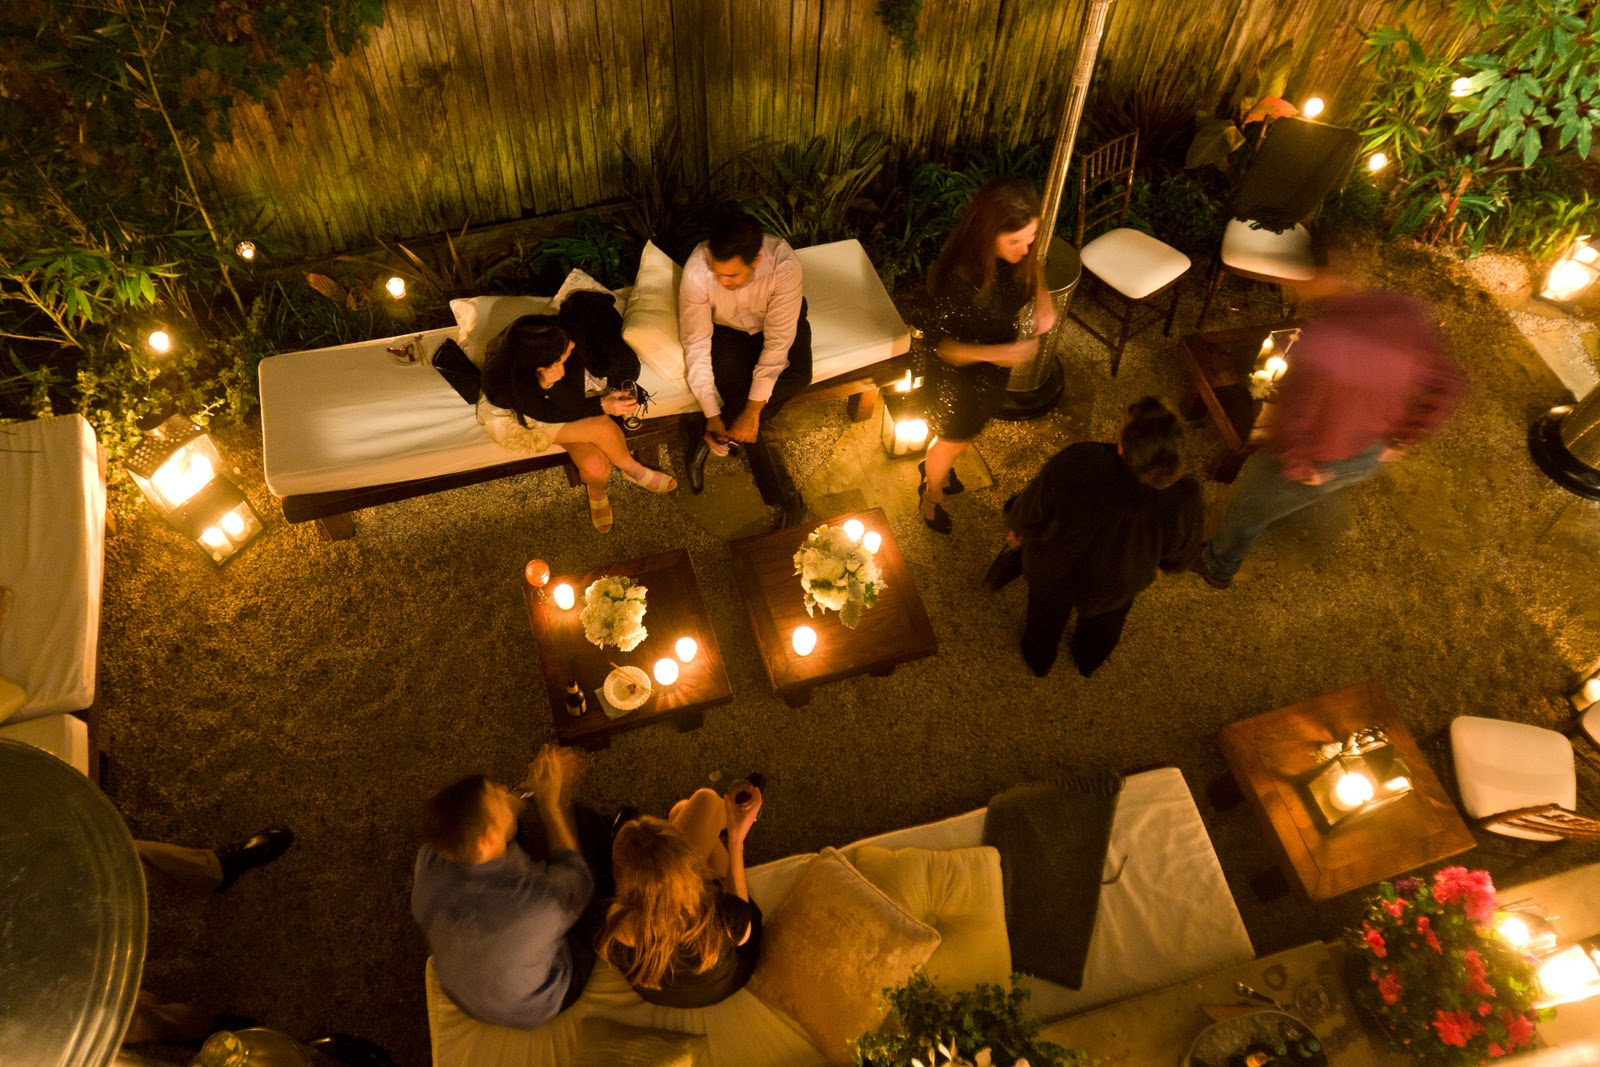 Outdoor Seating Area With Candles Flowers And People